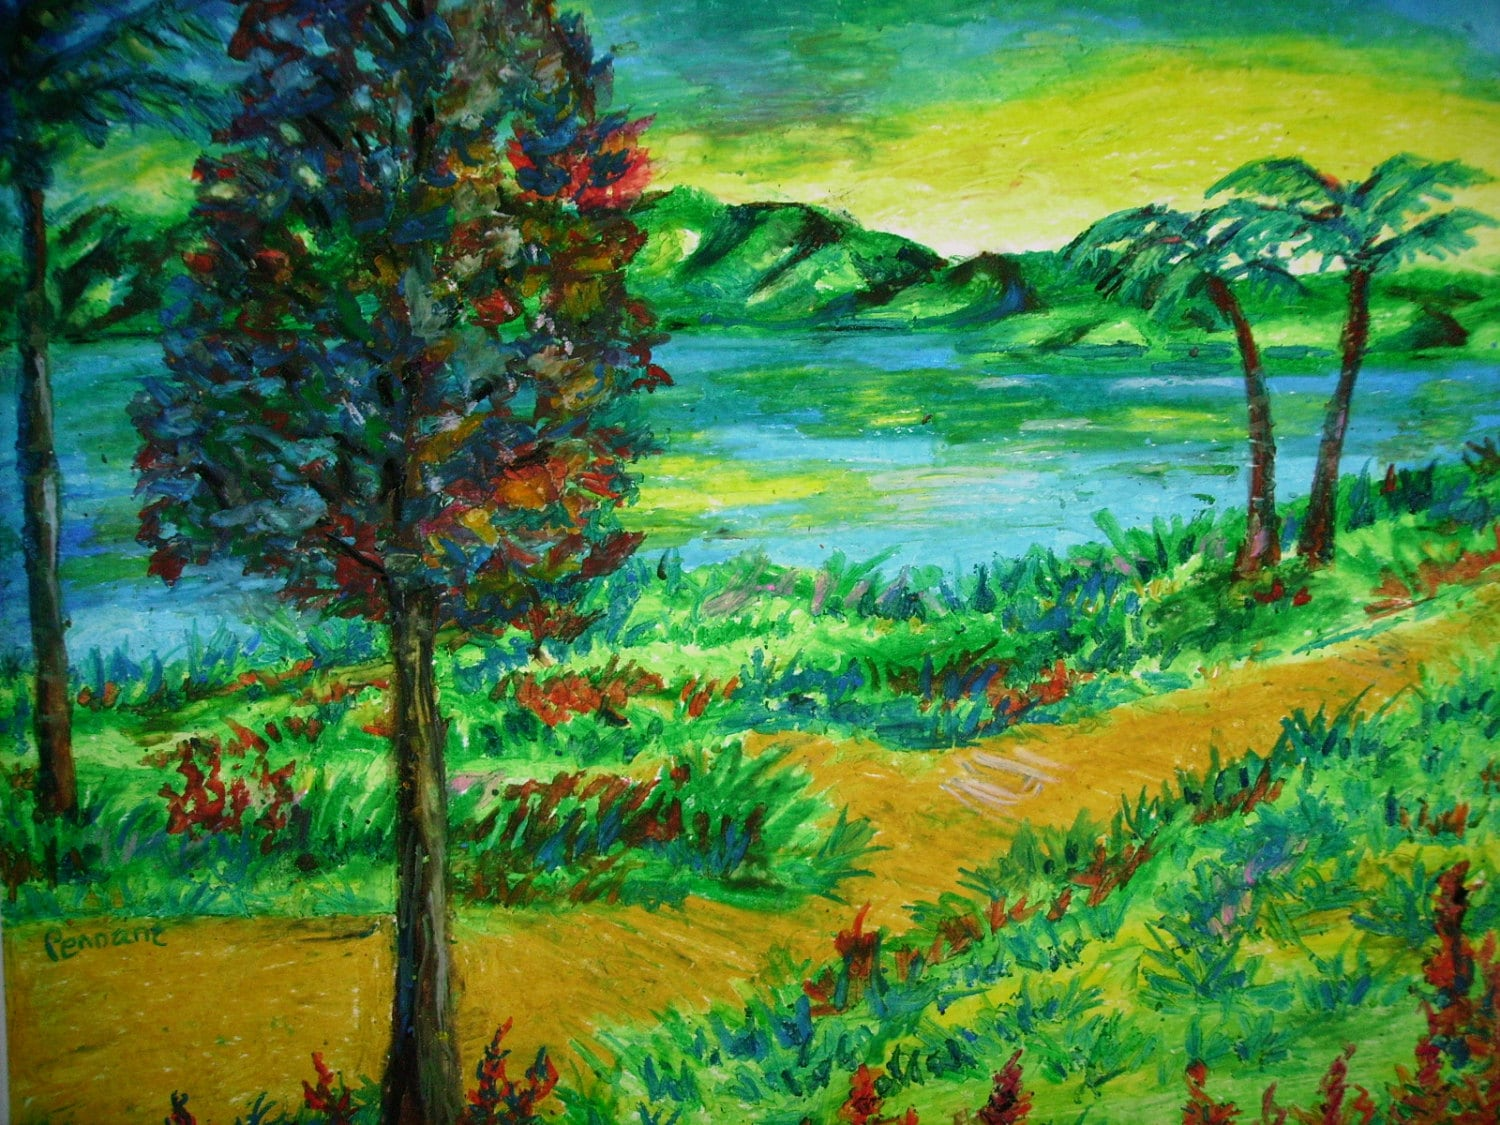 Oil pastel landscape drawing original 14x17 on bristol board for Beautiful drawings of trees